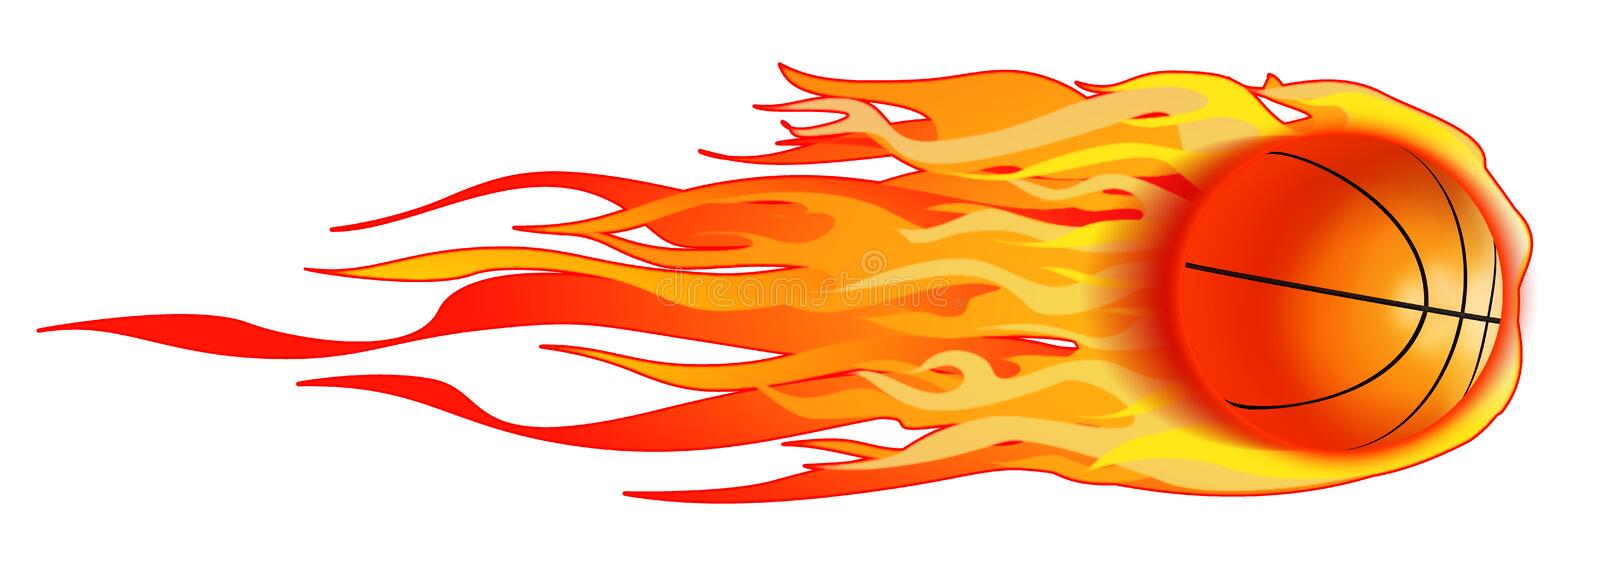 flaming basketball stock illustration illustration of icon 8220305 rh dreamstime com team with flaming basketball logo crossword flaming basketball through hoop logo